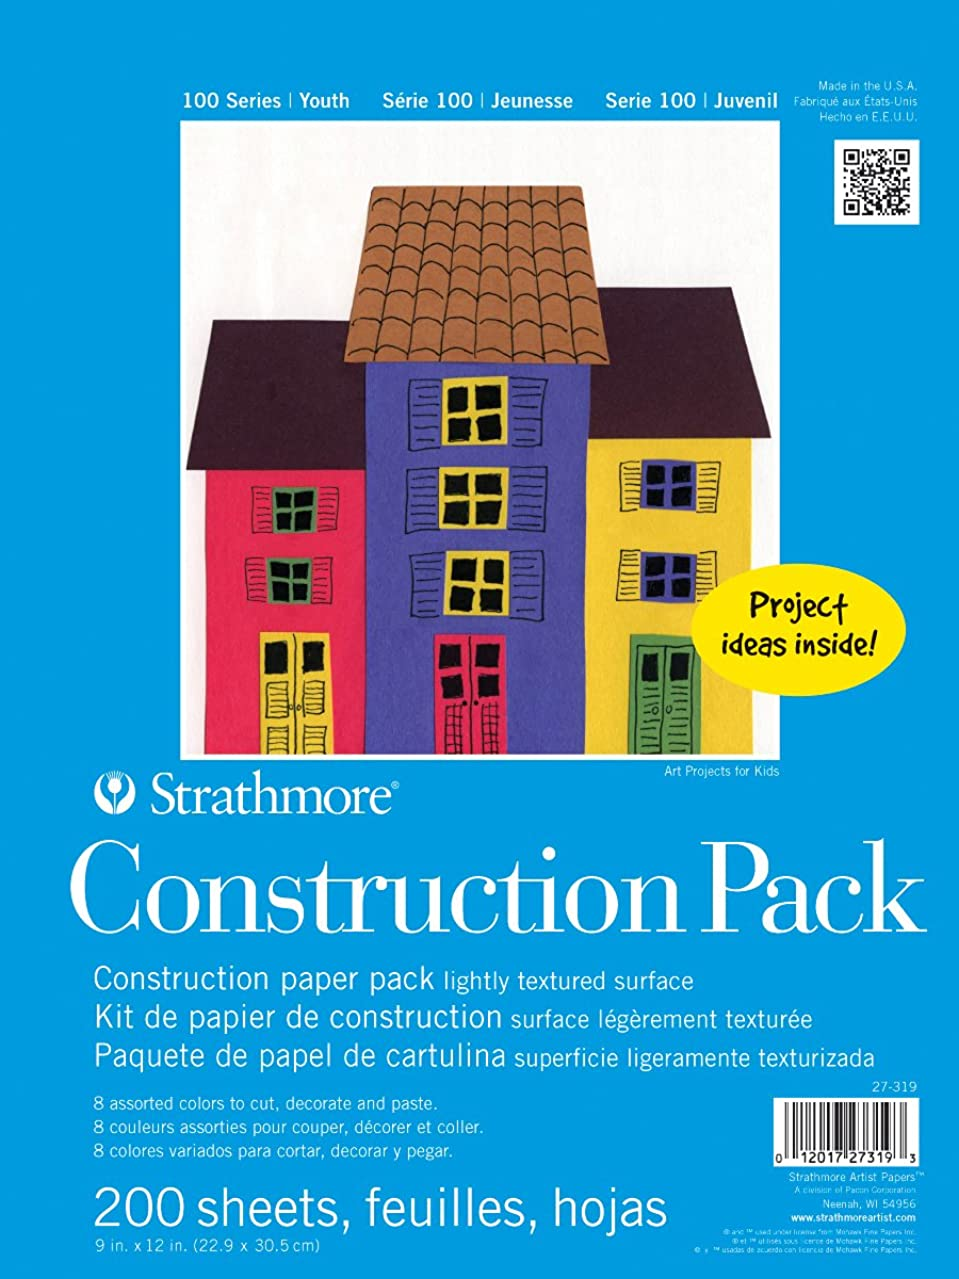 Strathmore 100 Series Youth Construction Paper Pack, Bulk Pack 200 Sheets